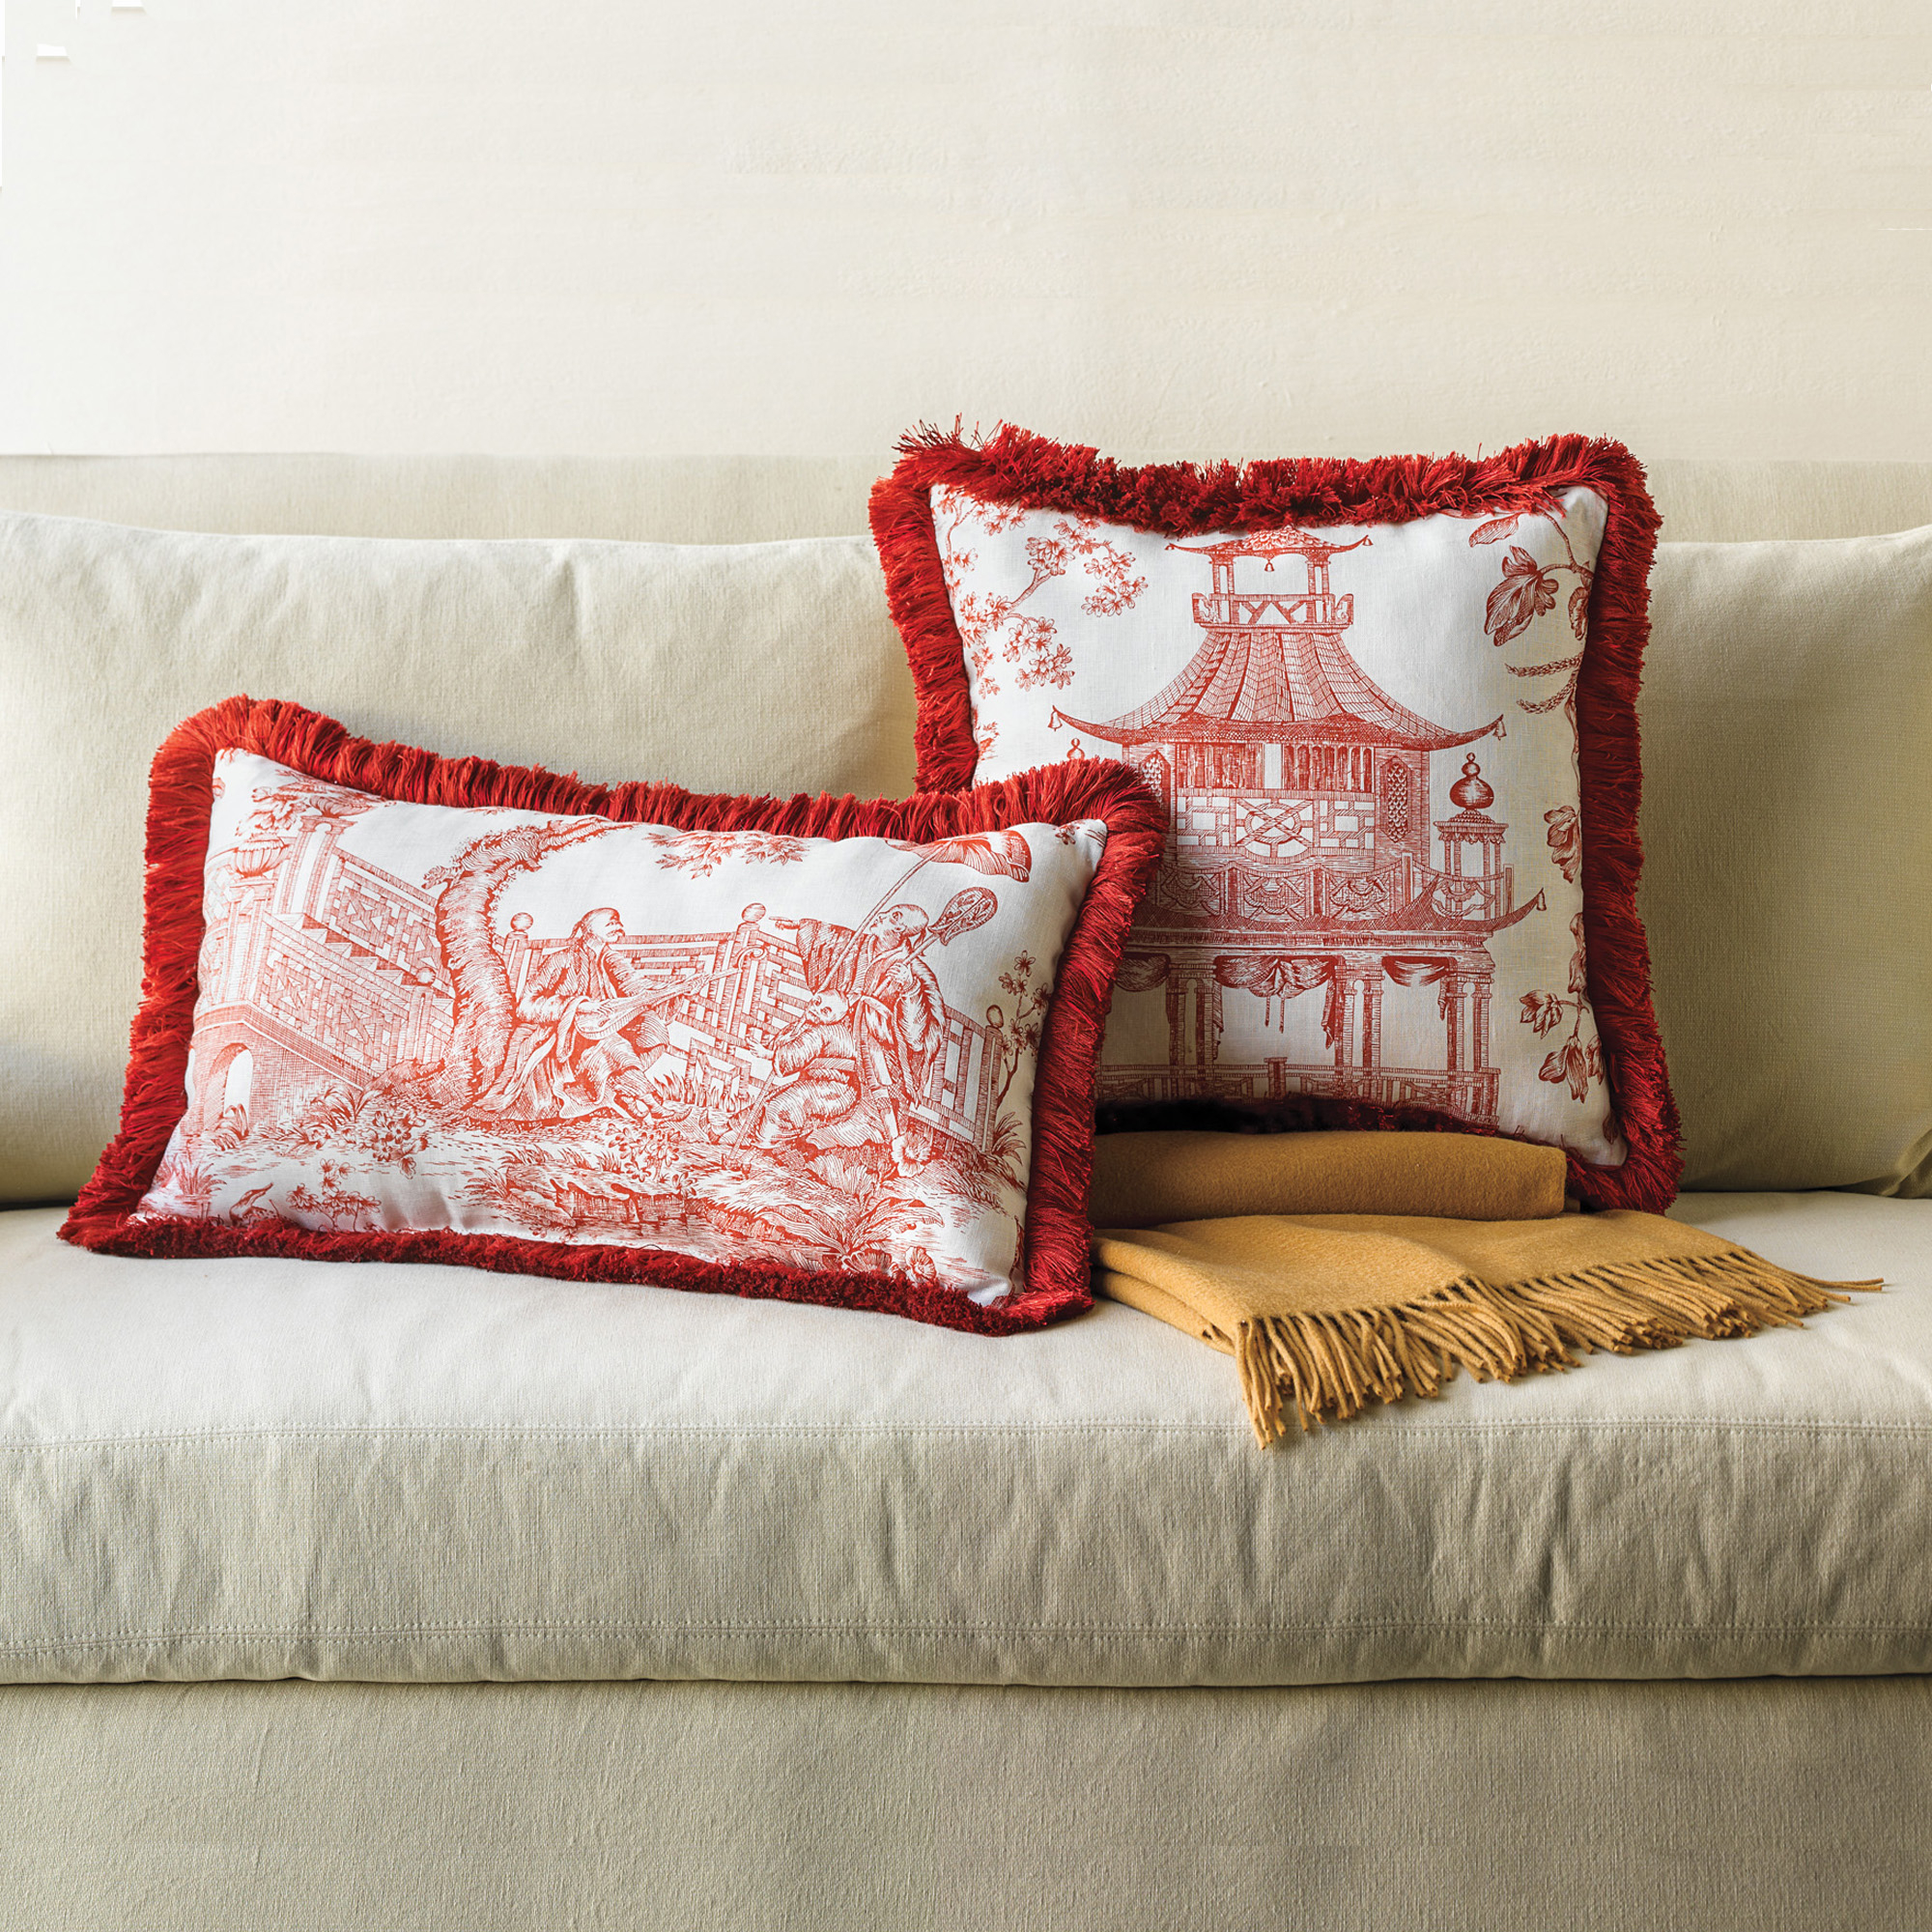 Linen Chinoiserie Pillows, Red